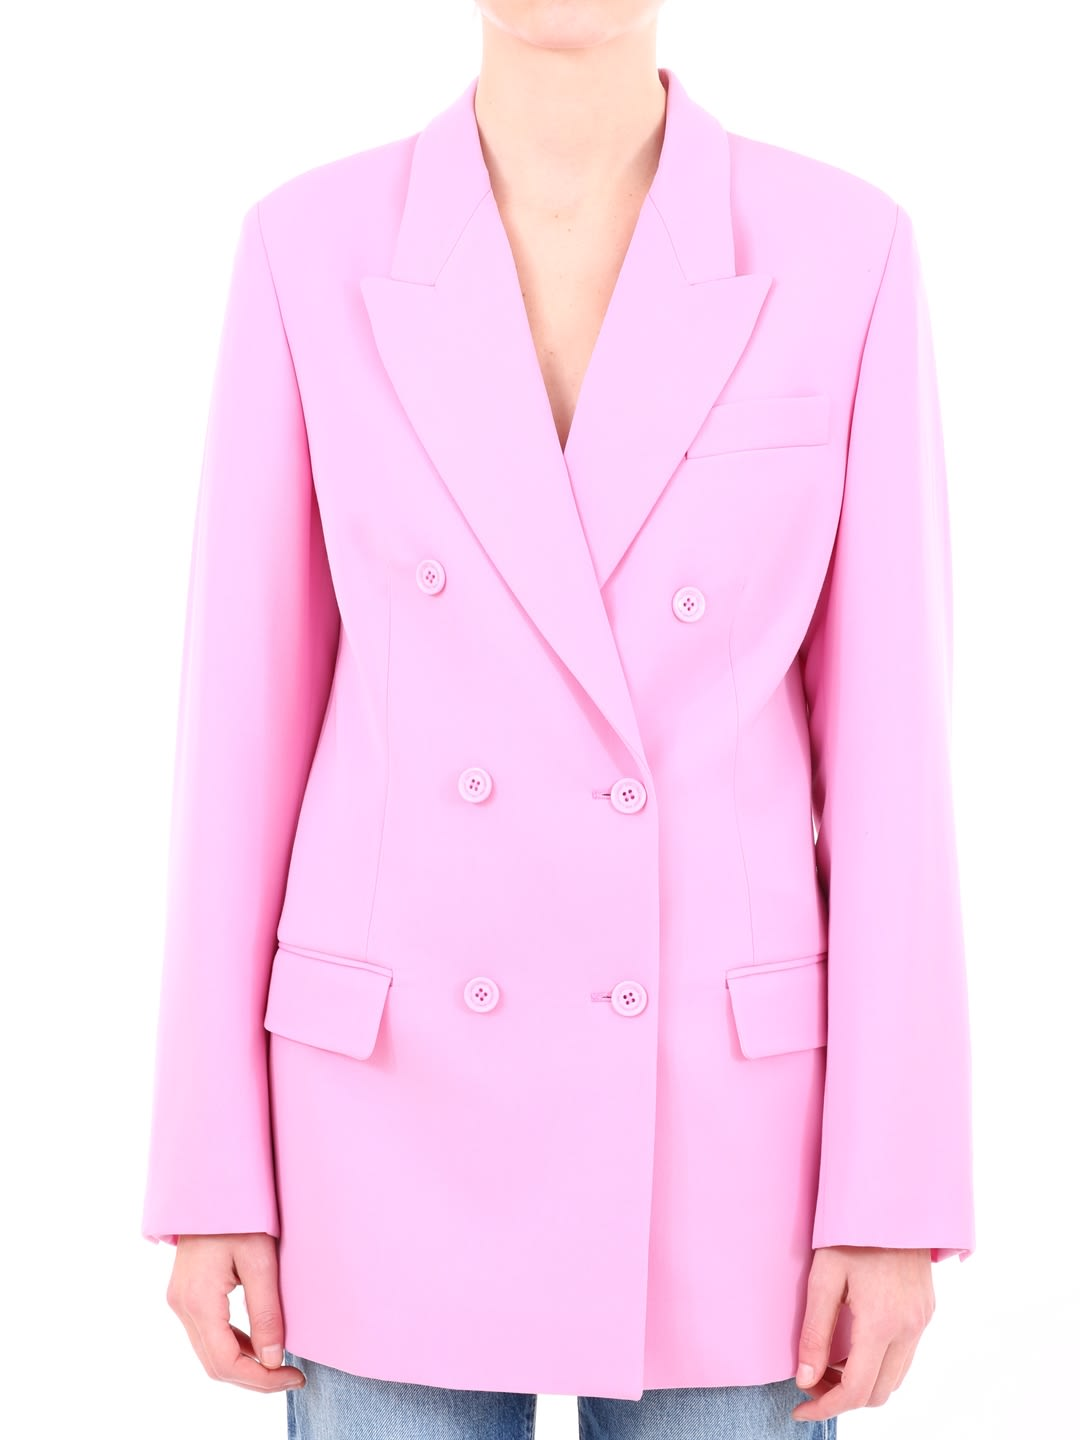 Stella McCartney Pink Jacket